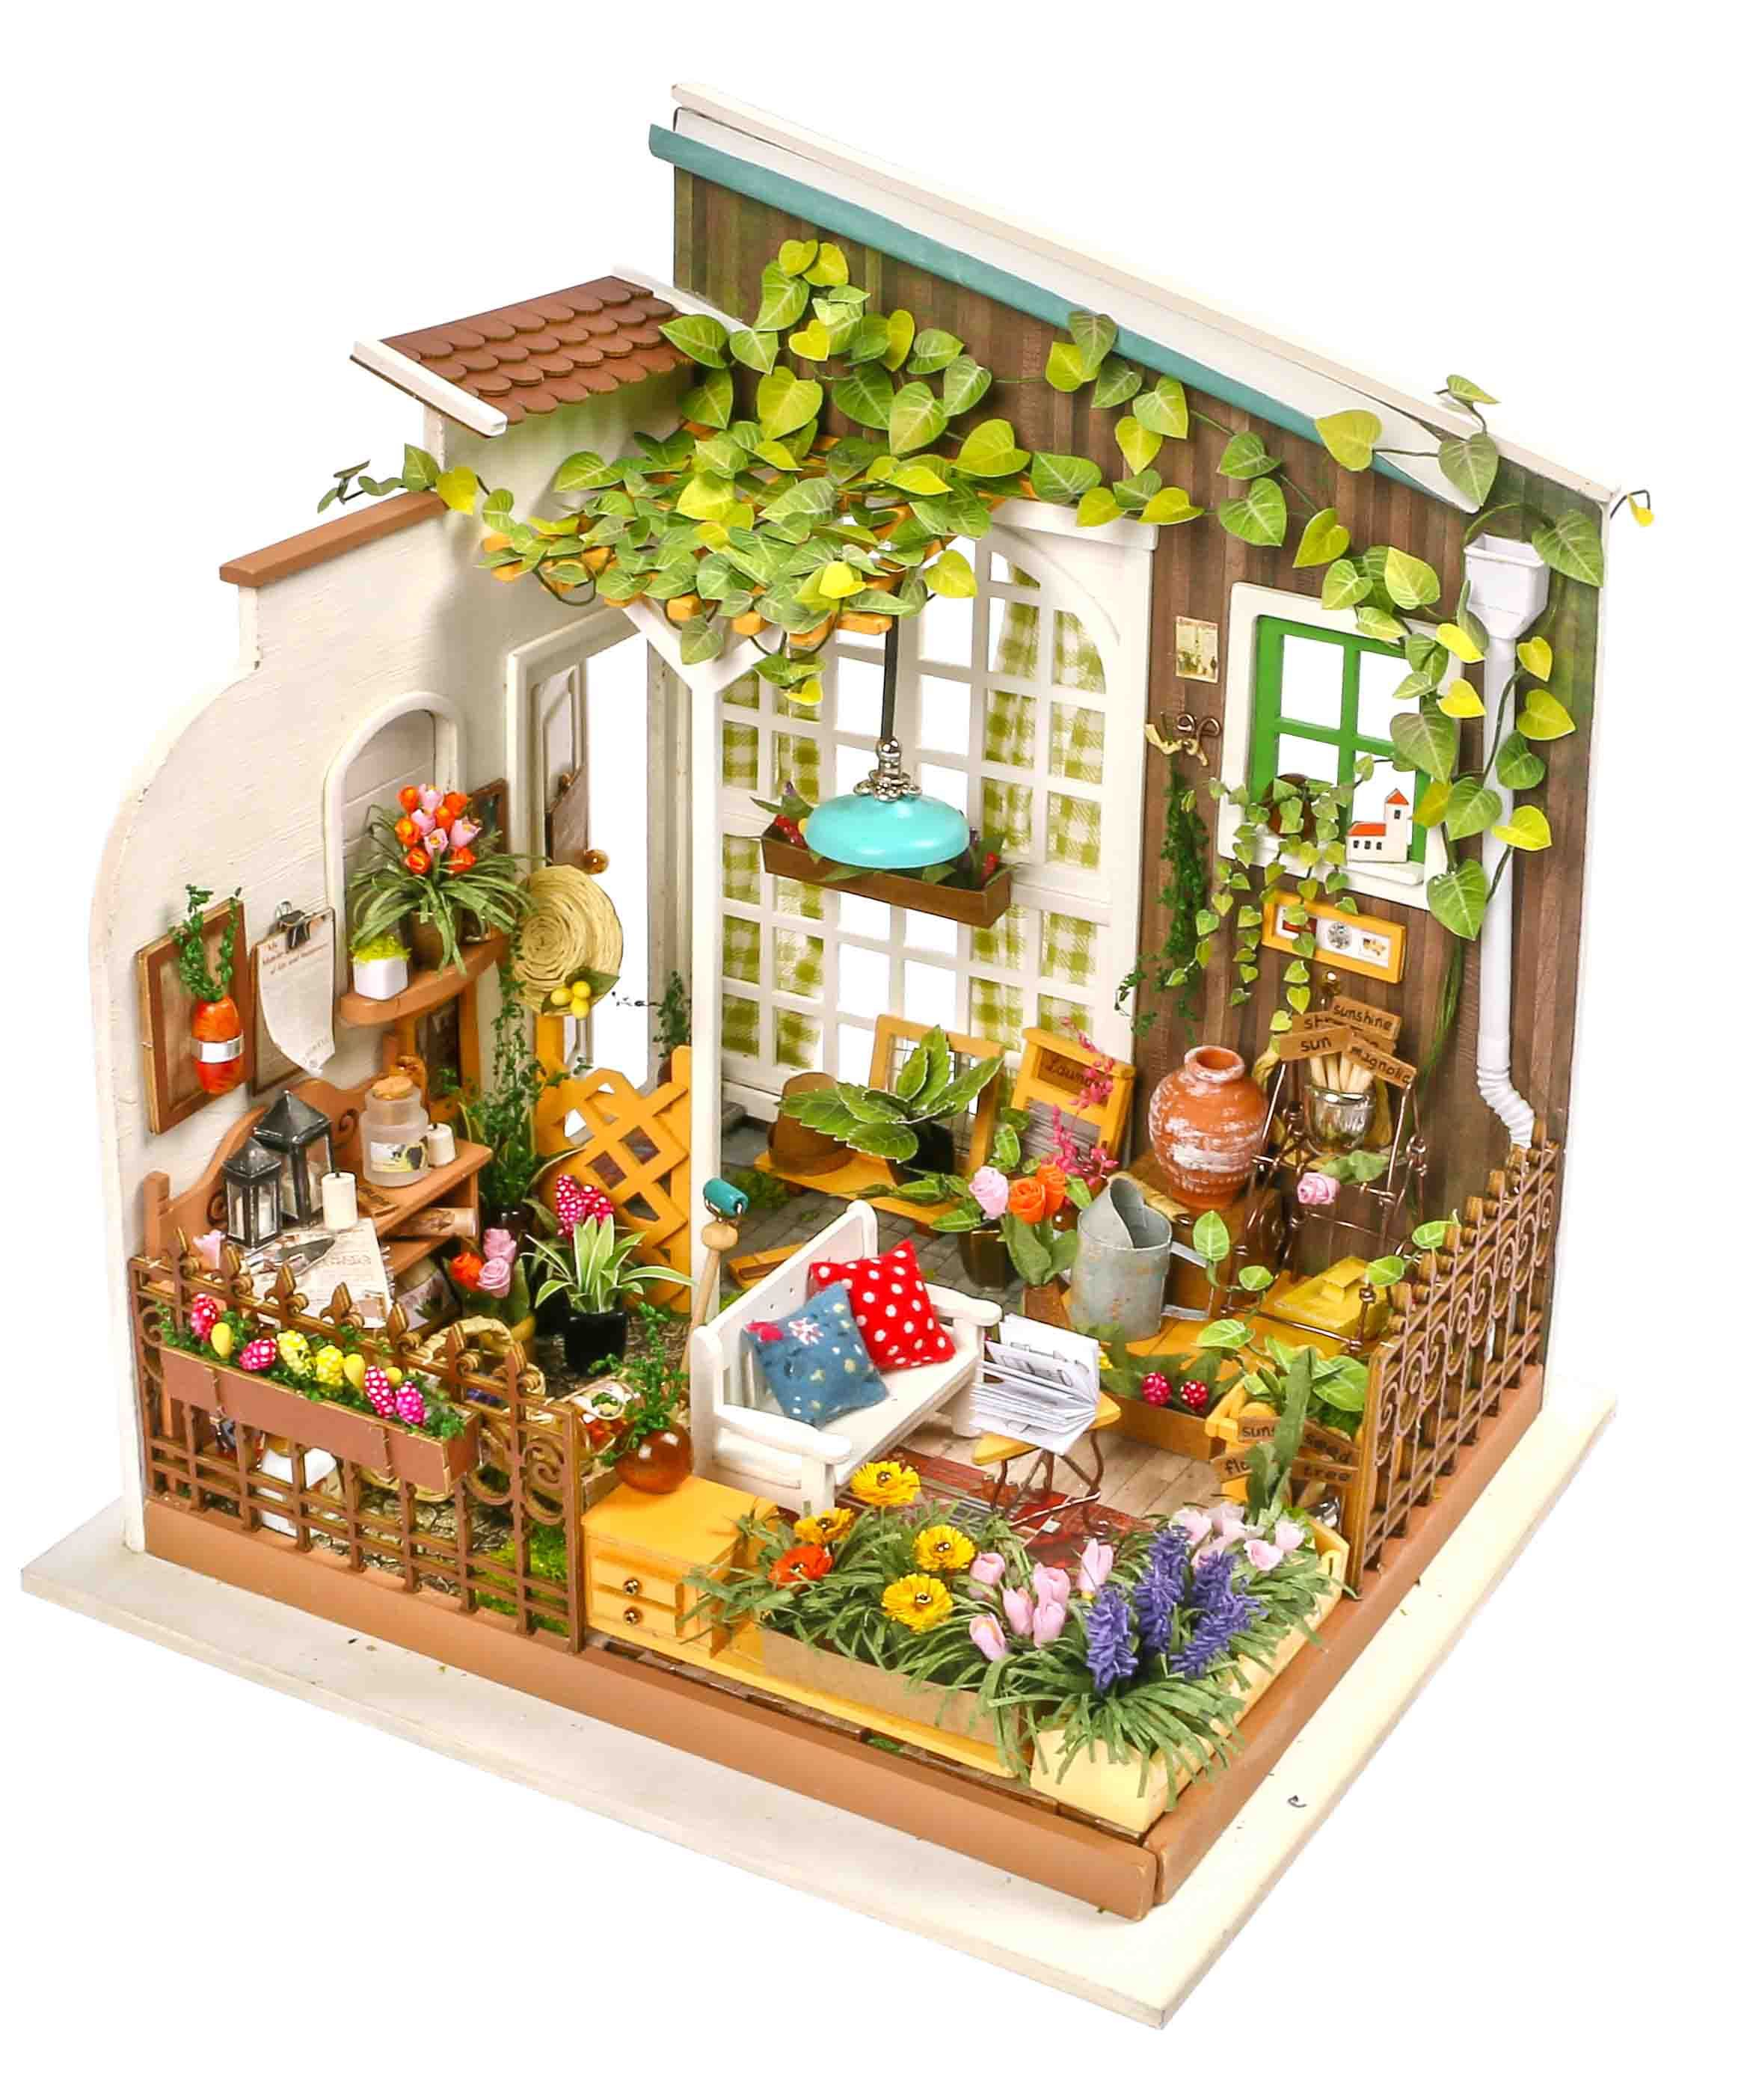 DIY Miniature Dollhouse Kit Mini 3D Wooden House with Furniture LED Lights Gift